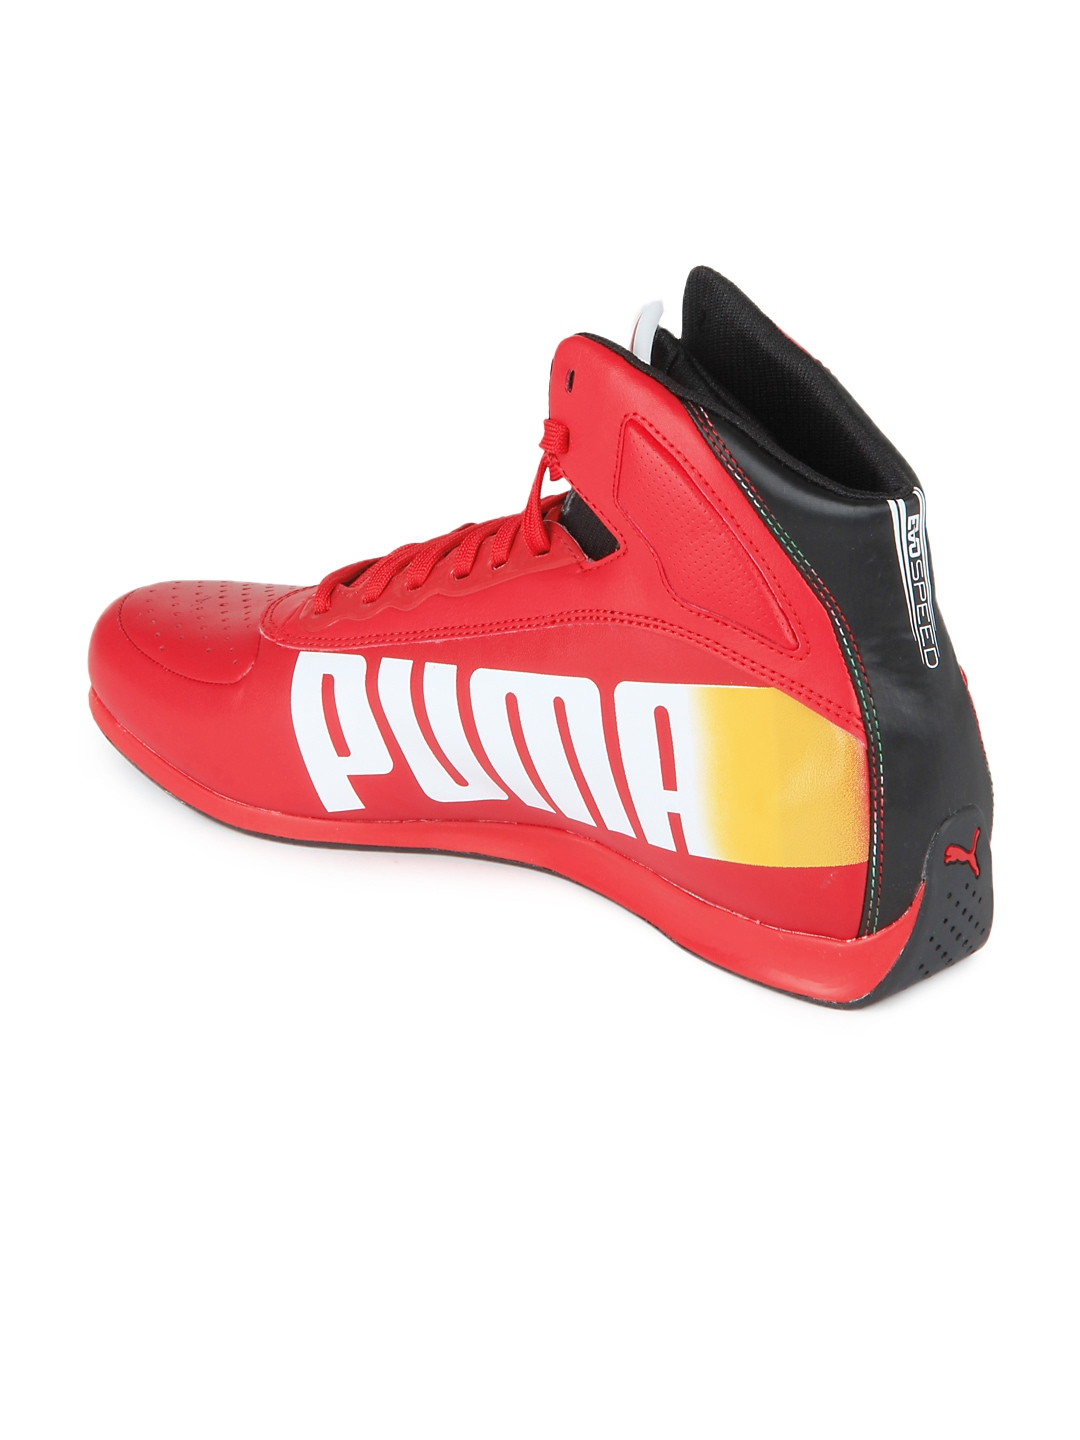 puma ferrari shoes online india 31b165478